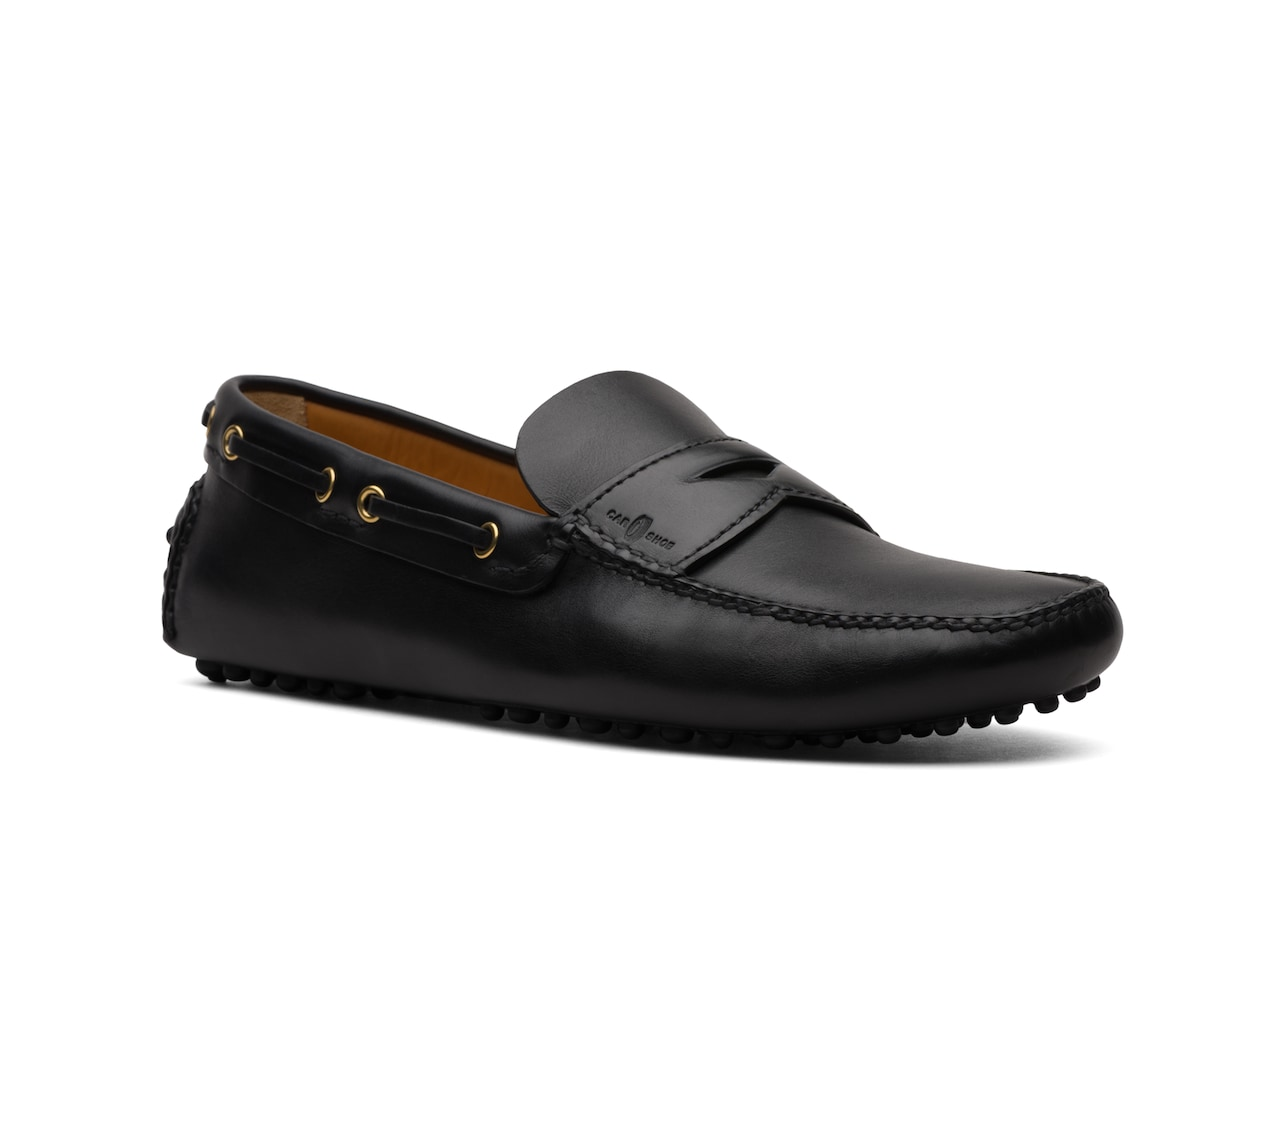 DRIVING SHOES SOFT CALF NERO